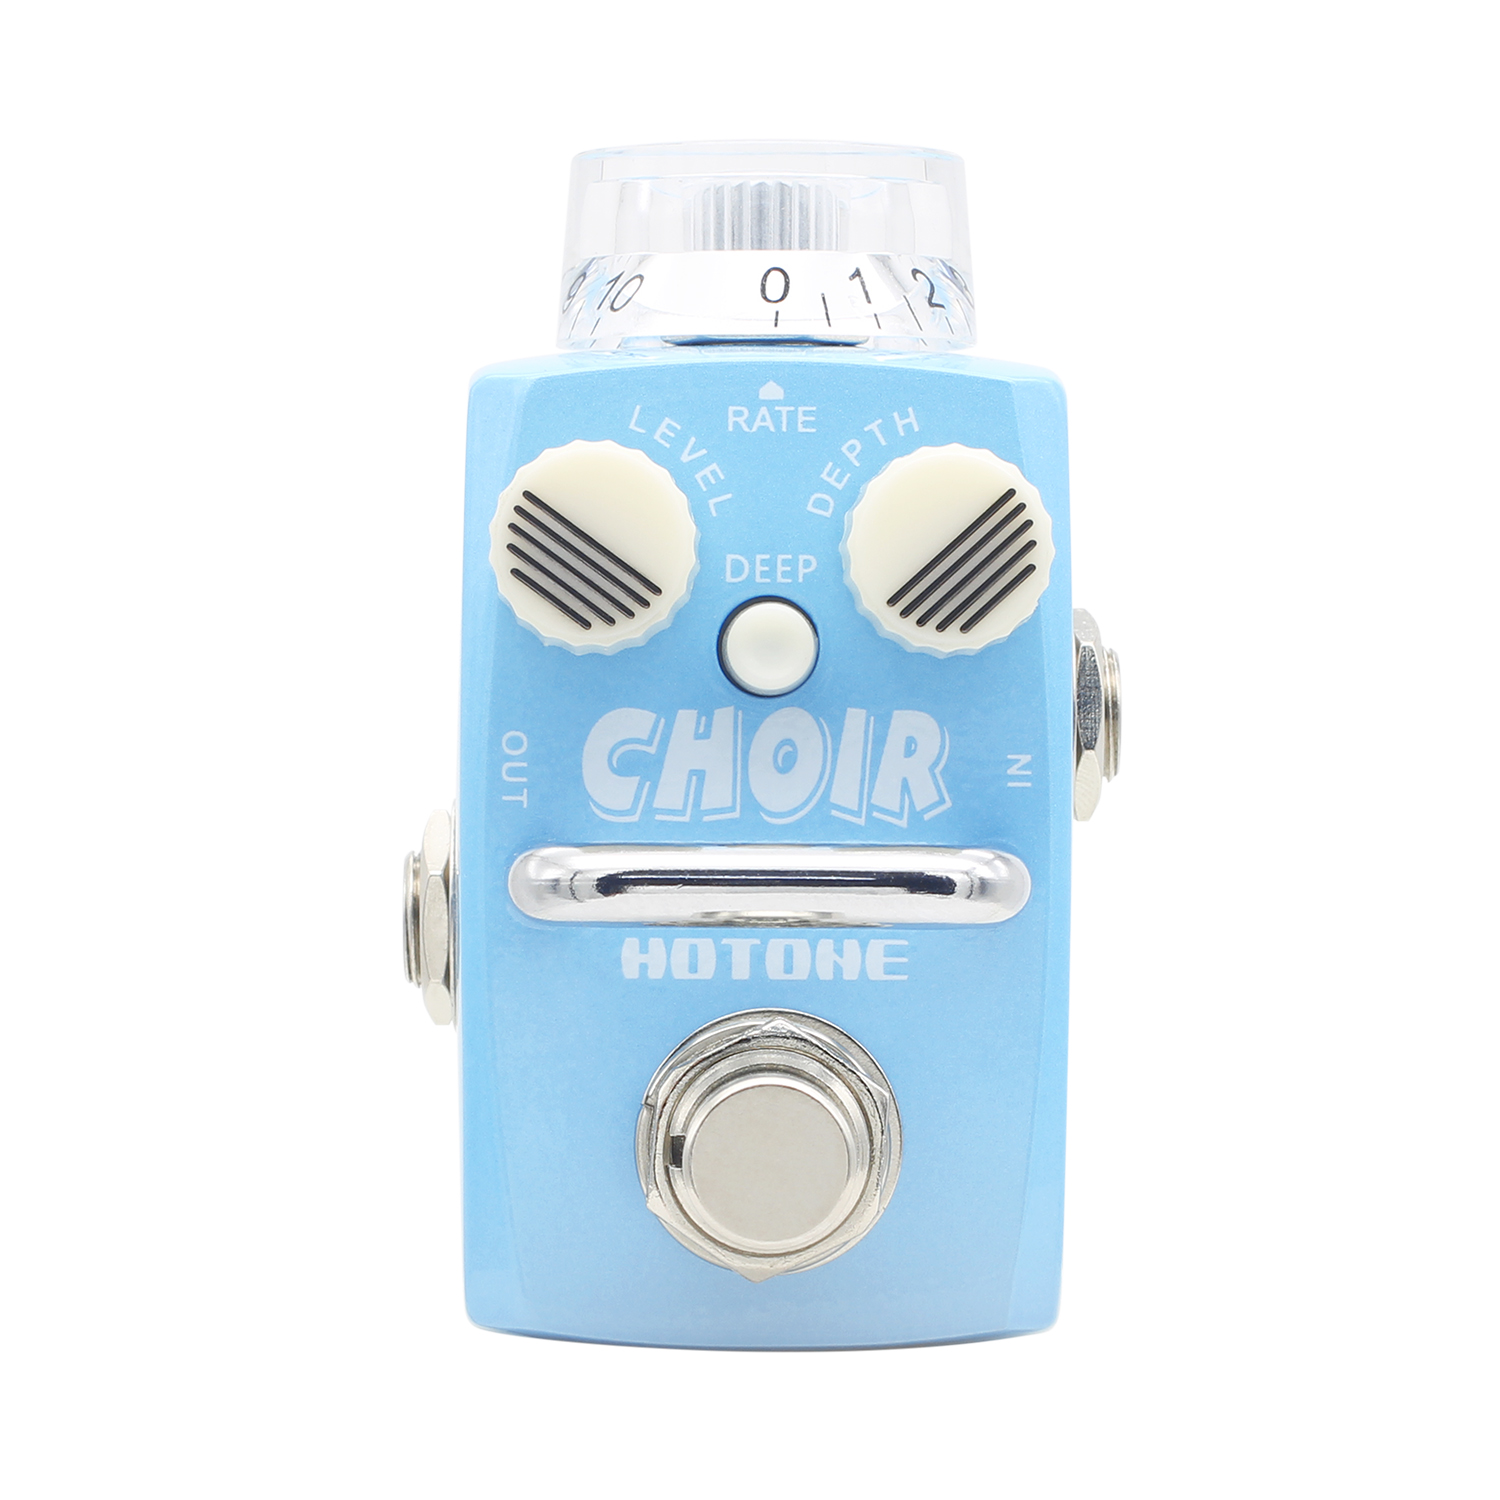 Hotone CHOIR Chorus Effect Pedal Inspired by Jazz-Chorus amplifier Analog Effects Stompbox for Electric Guitar True Bypass mooer mini ensemble king electric guitar effect pedal true bypass pure analog chorus sound